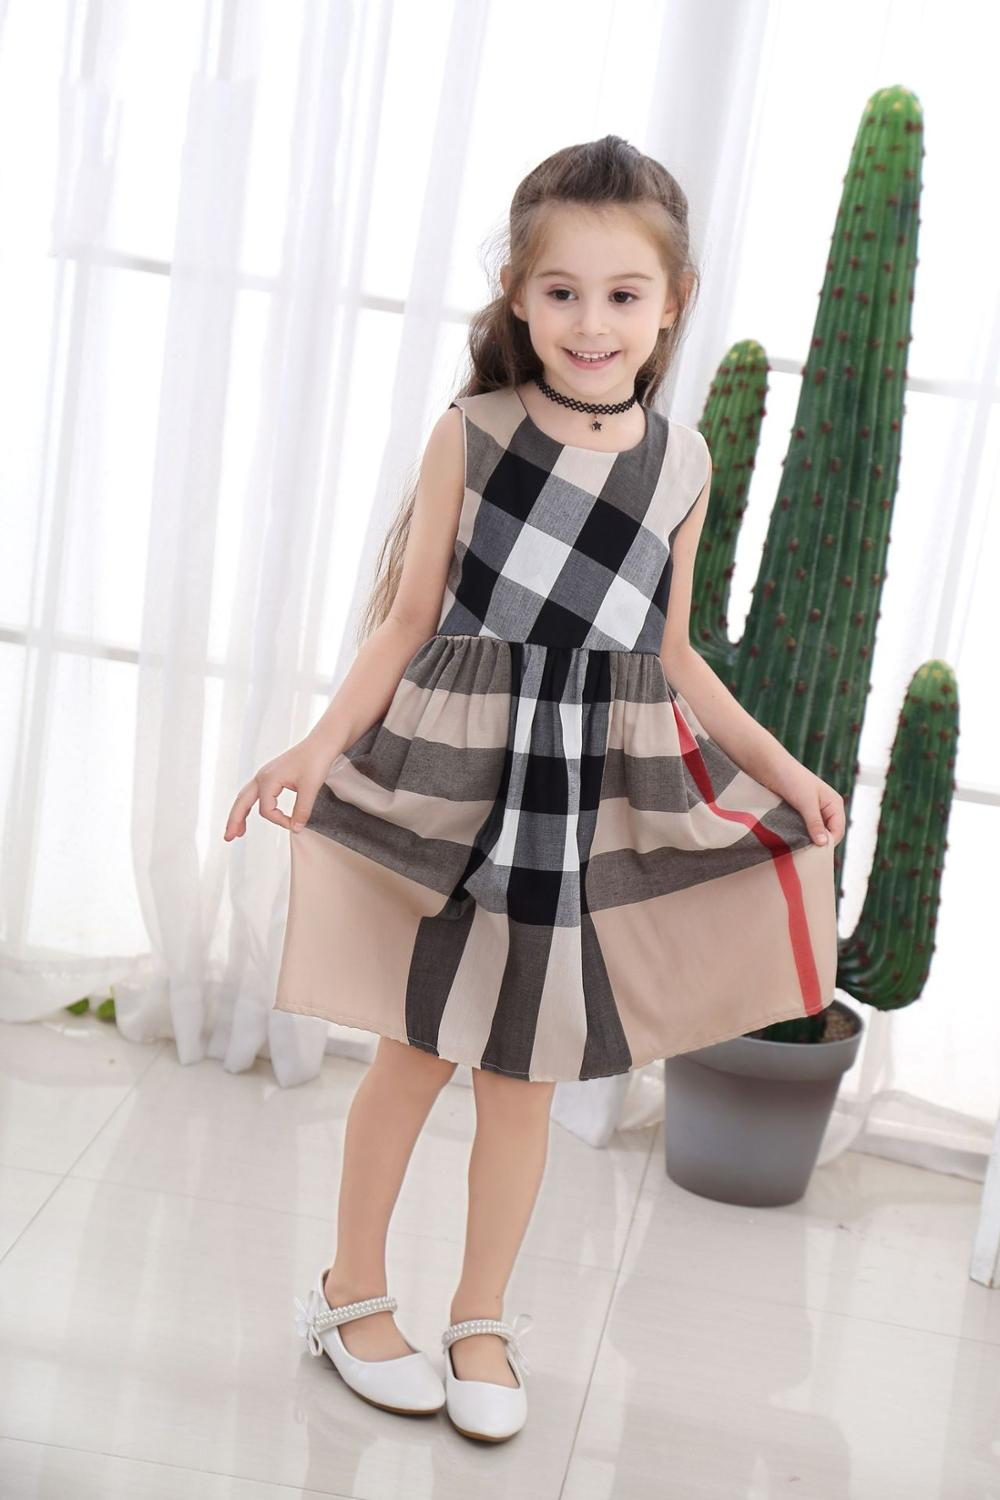 Summer sleeveless plaid baby Girl Pure cotton clothes ruffles backless Children dress crew neck baby dresses Kids Clothing(China)